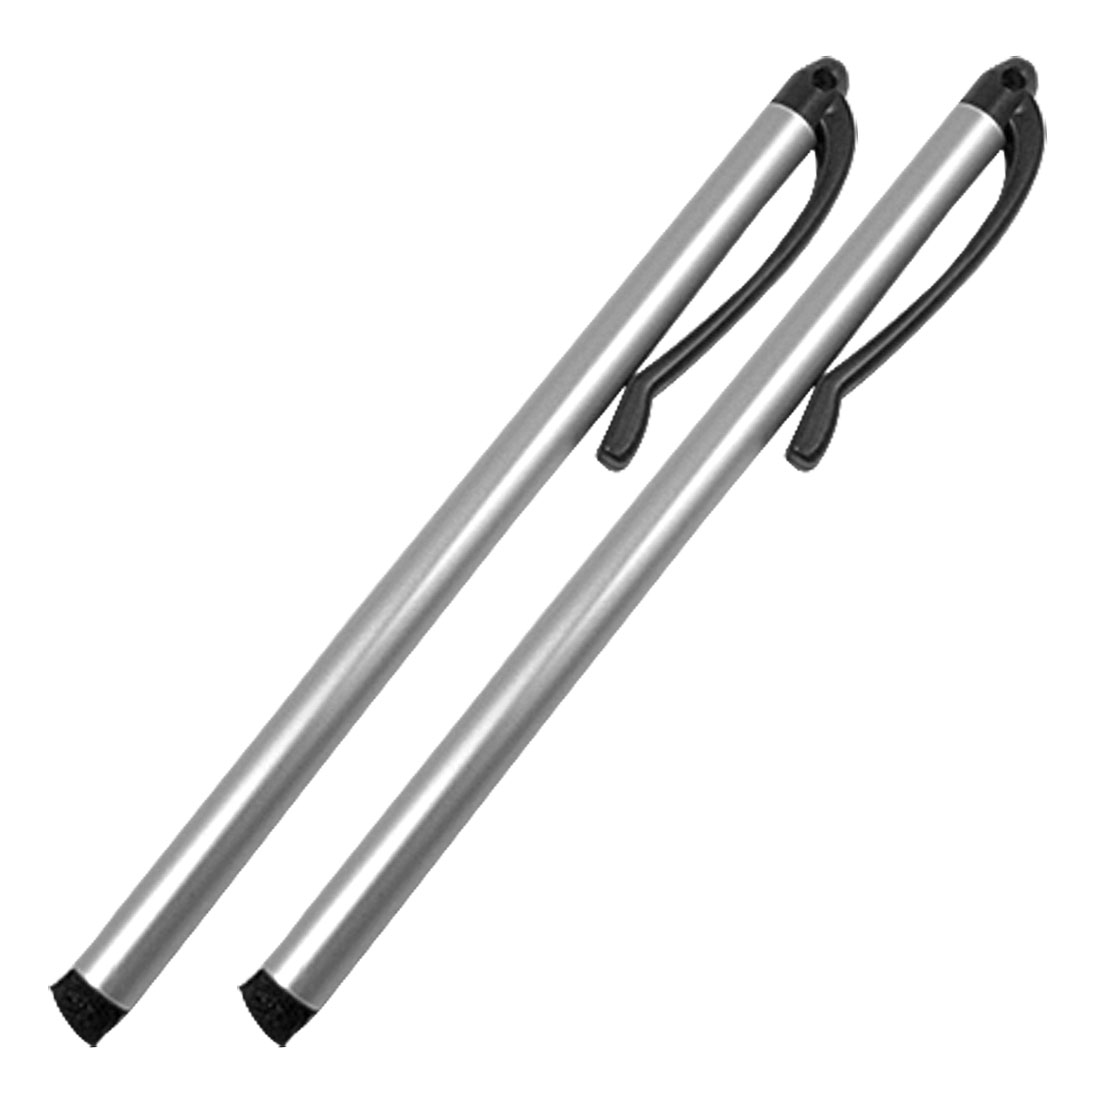 2pcs Silver Tone Replacement Stylus Touch Pen